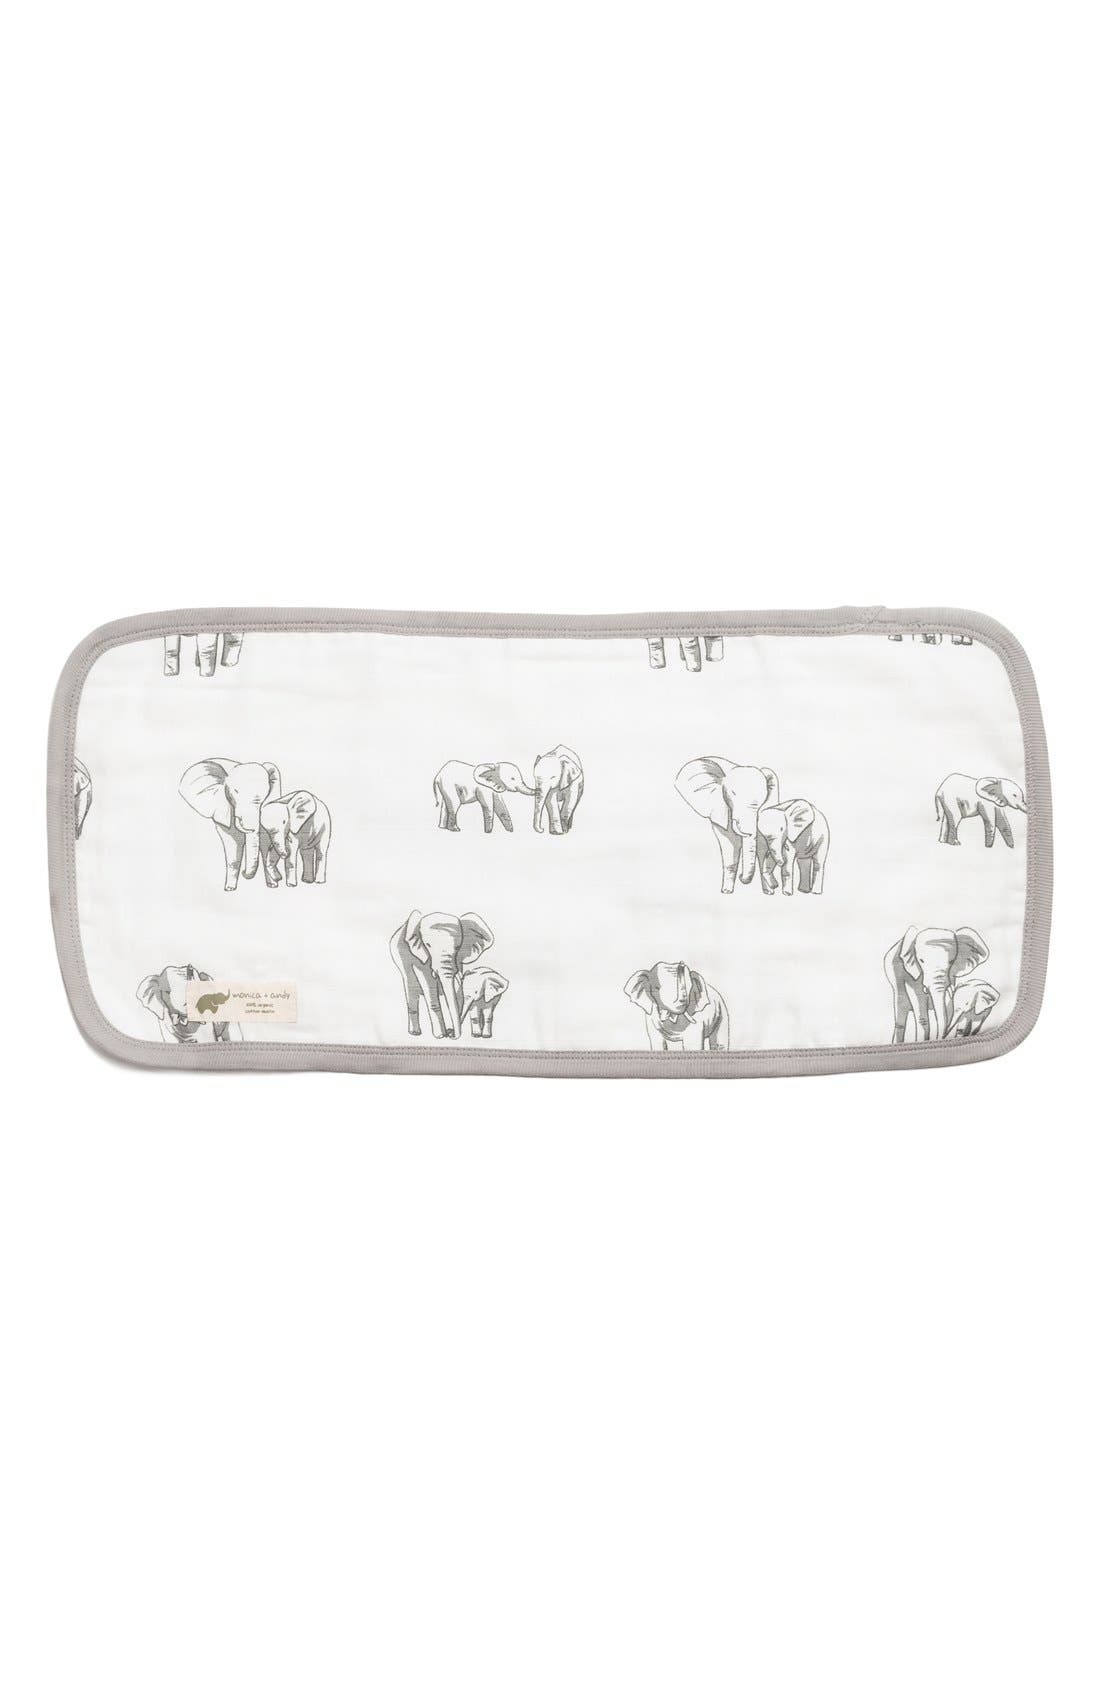 Alternate Image 1 Selected - Monica + Andy Organic Cotton Burp Cloth